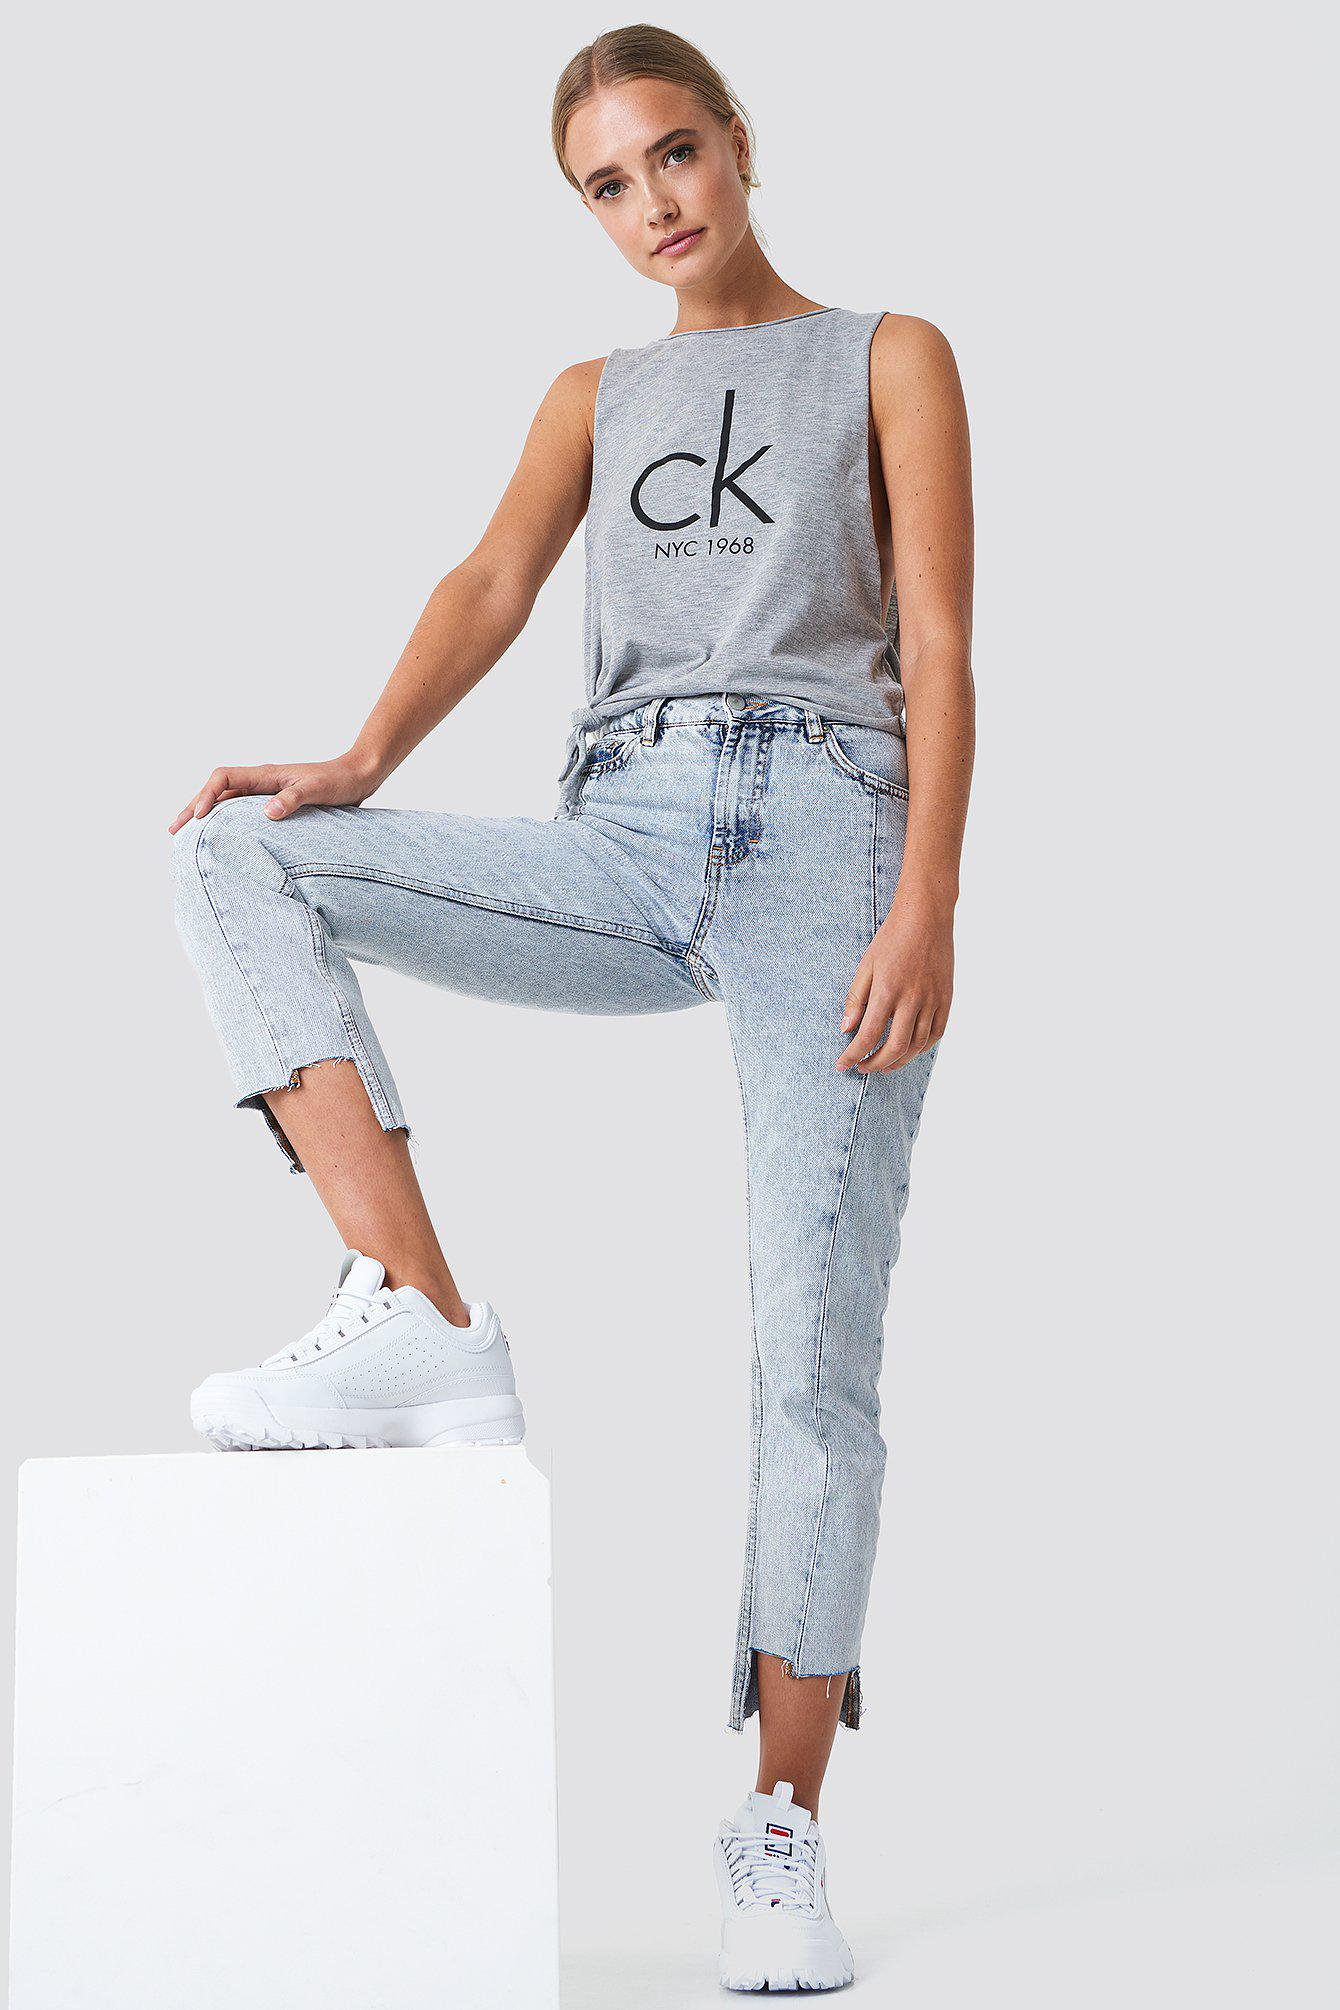 f52e345dcb836 CALVIN KLEIN 205W39NYC Side Knot Tank Top in Gray - Lyst